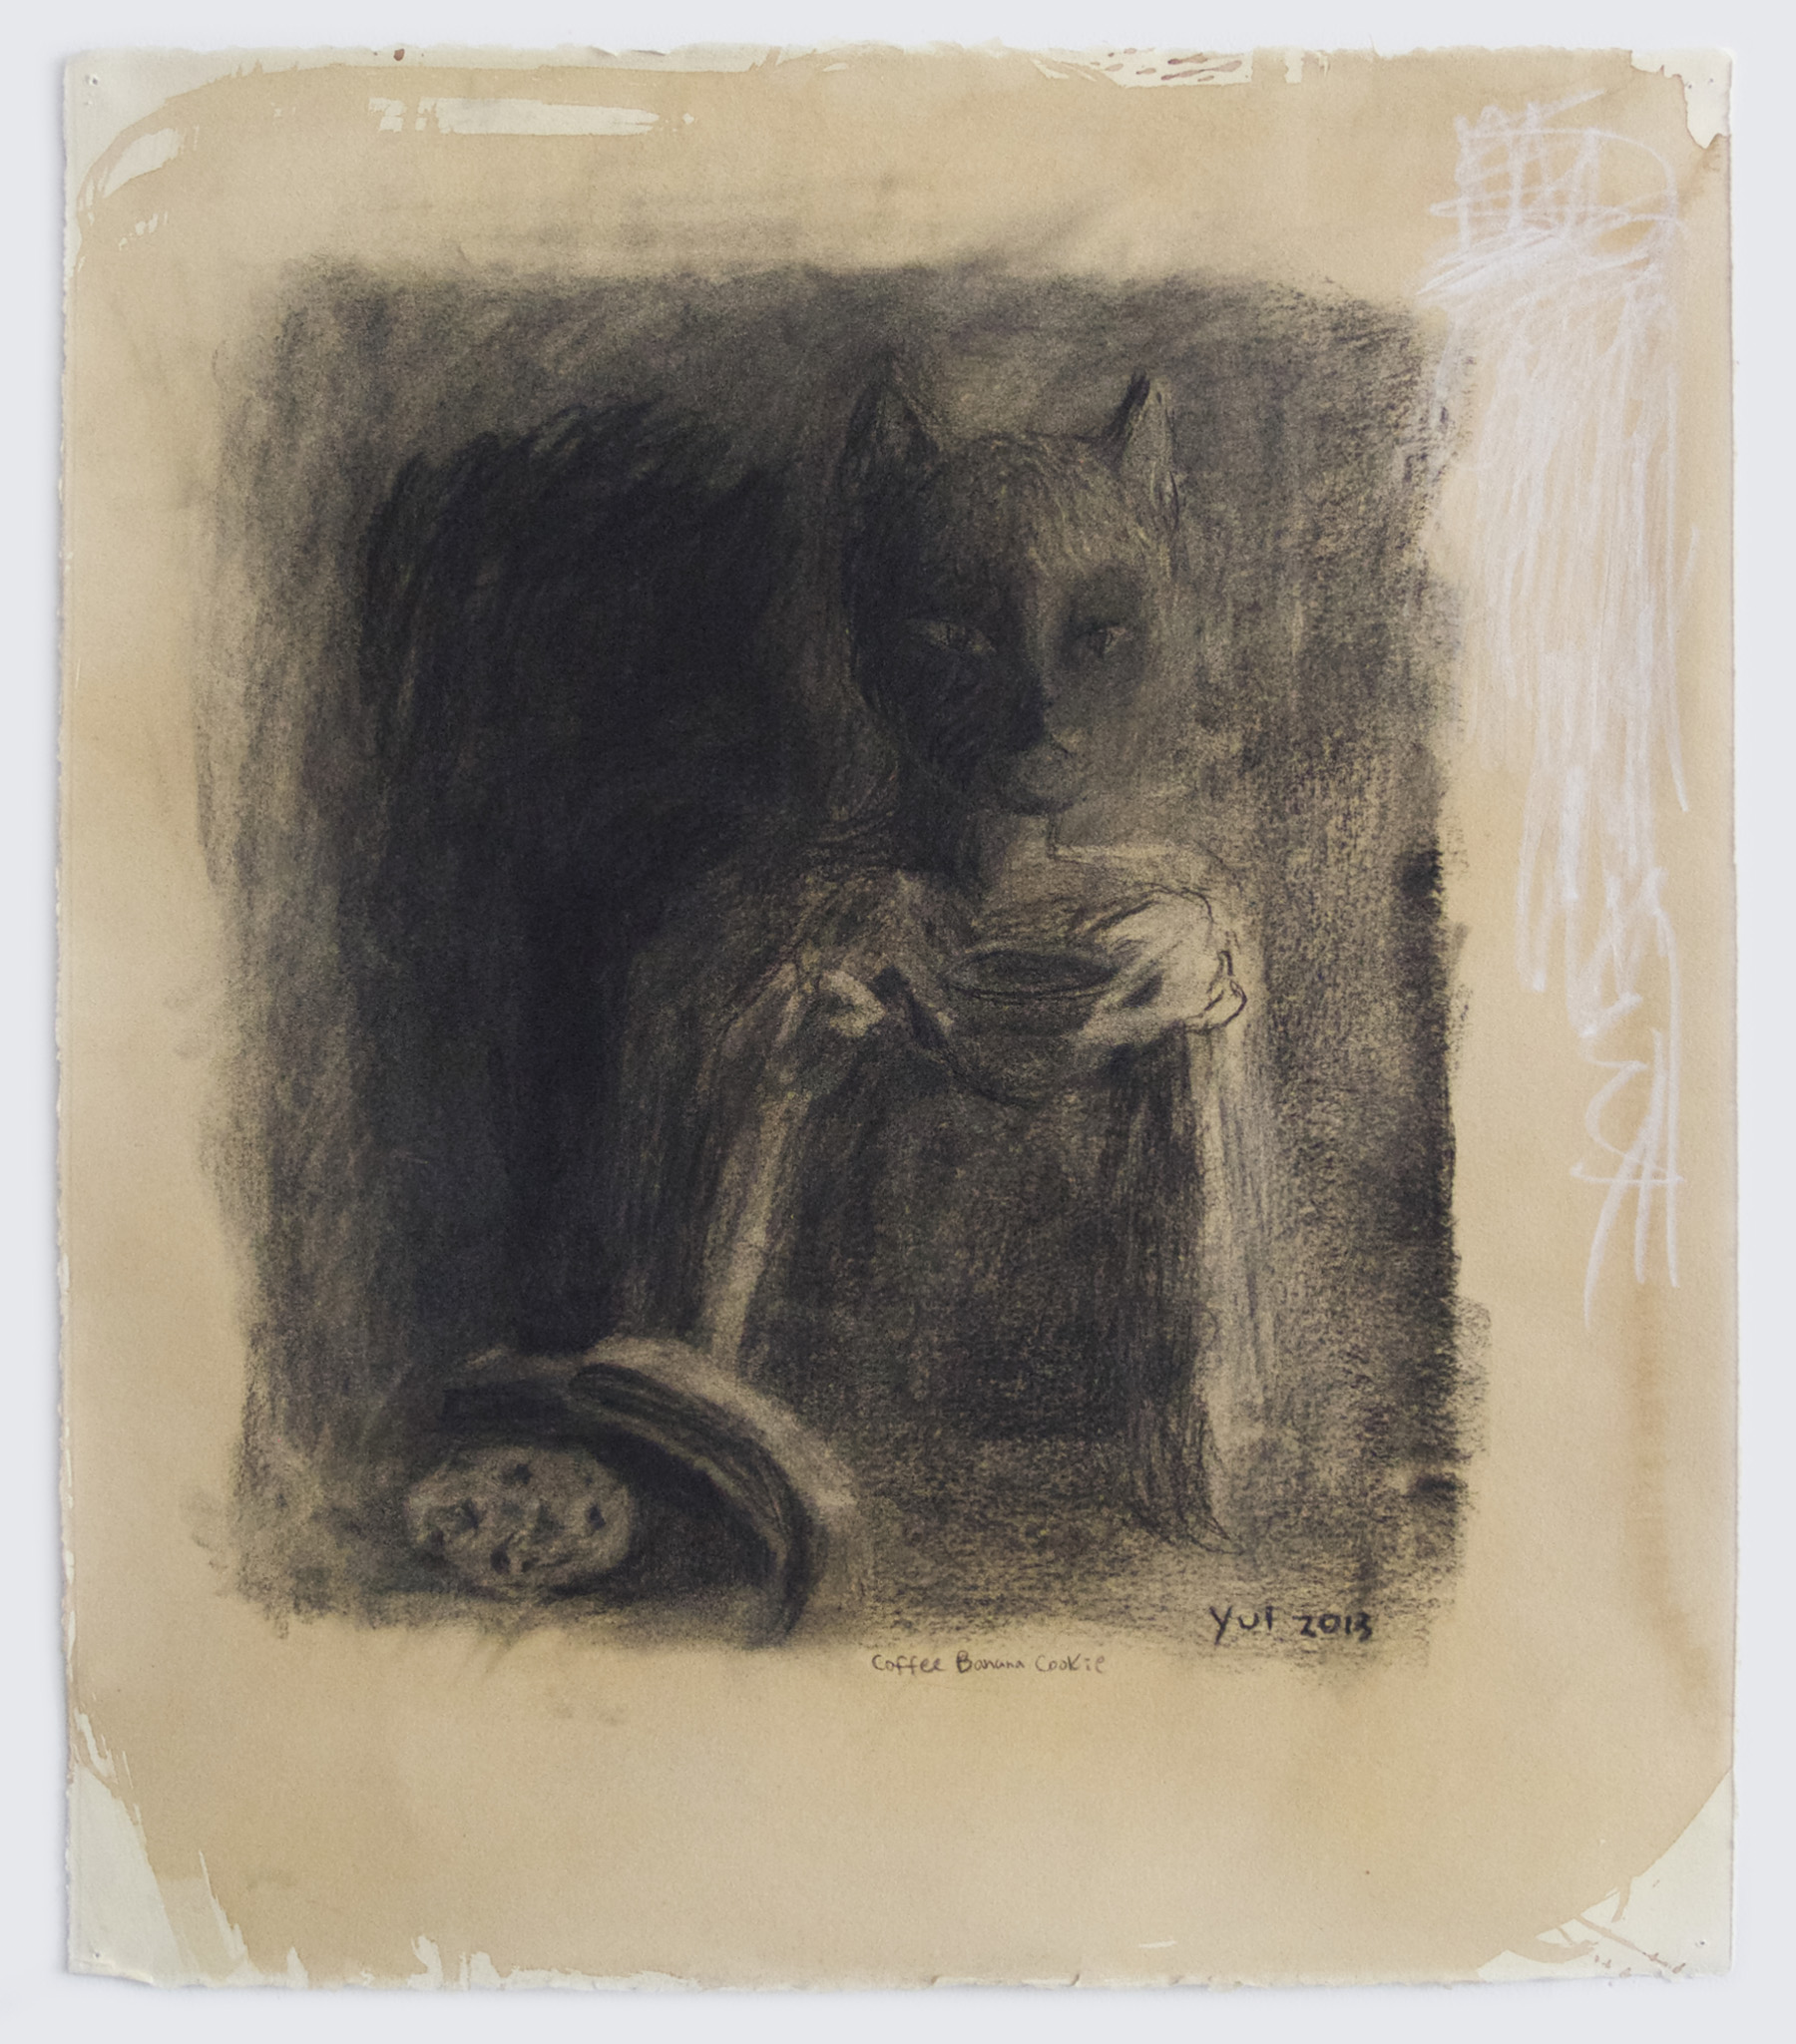 Yui Kugimiya  Coffee Banana Cookie, 2013  Charcoal, pastel, graphite and coffee on paper  22 x 19 inches